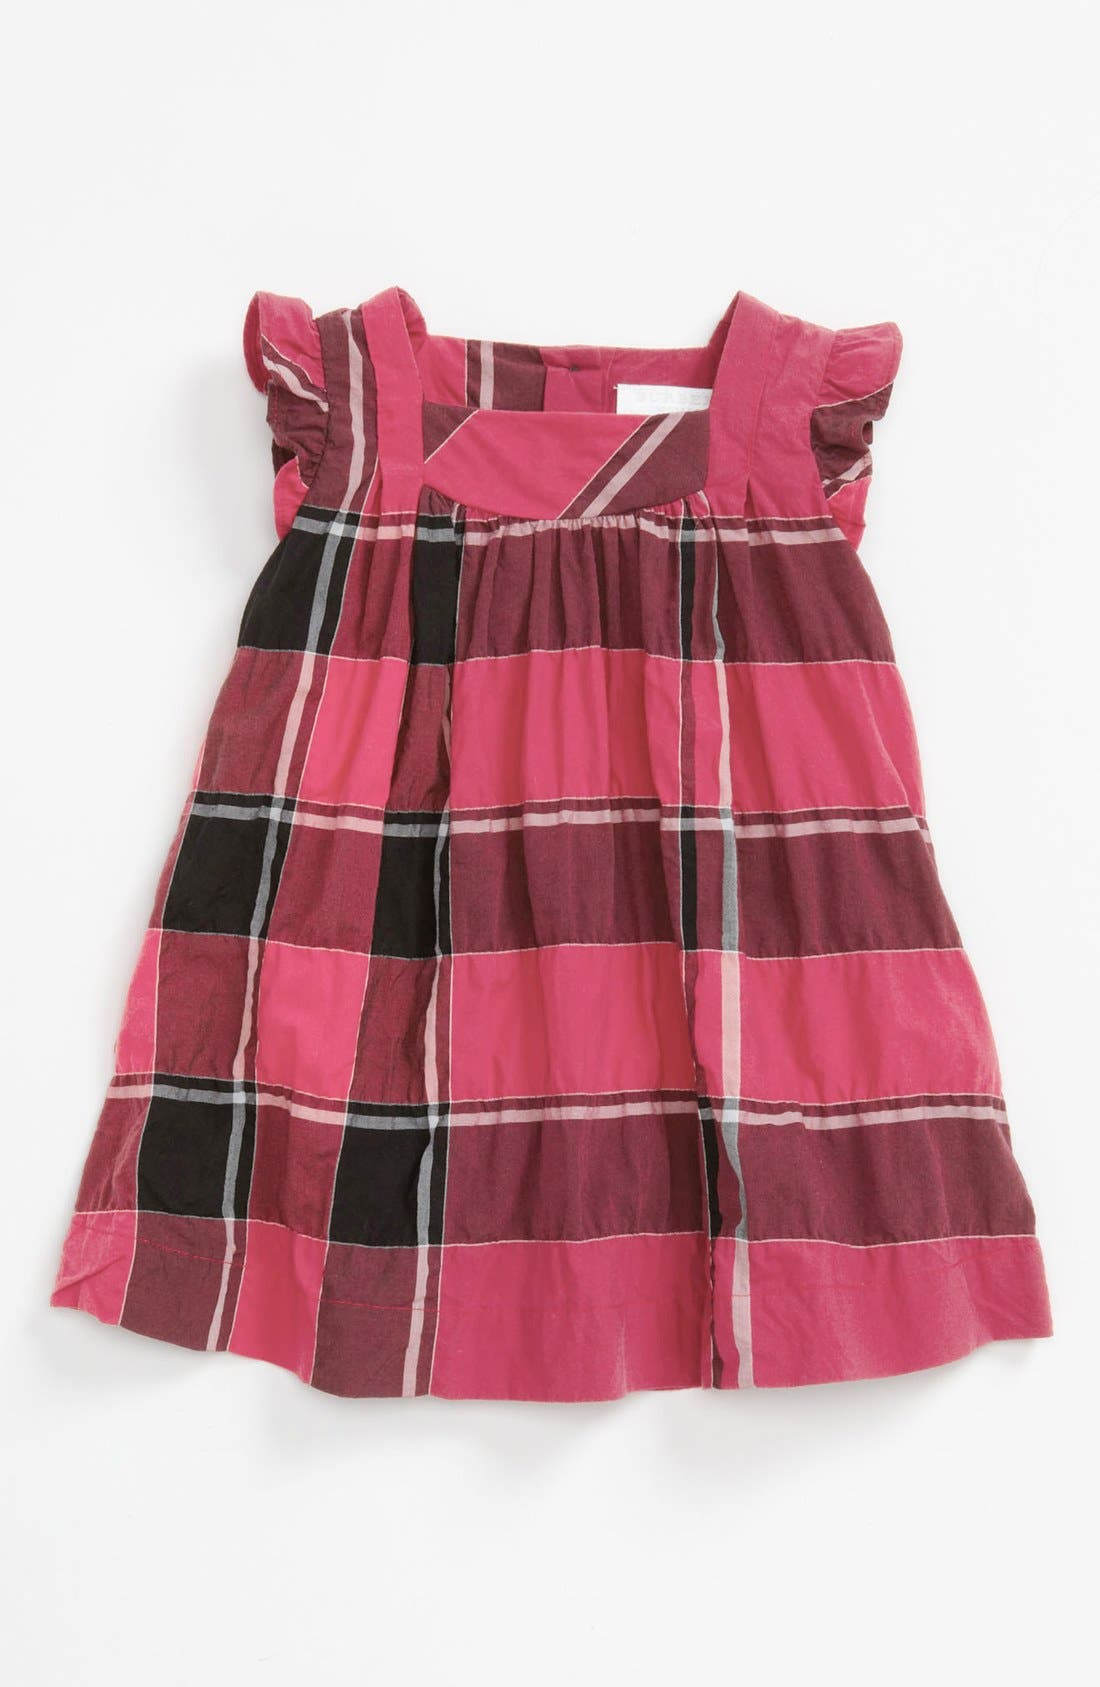 Alternate Image 1 Selected - Burberry 'Desire' Dress (Baby Girls)